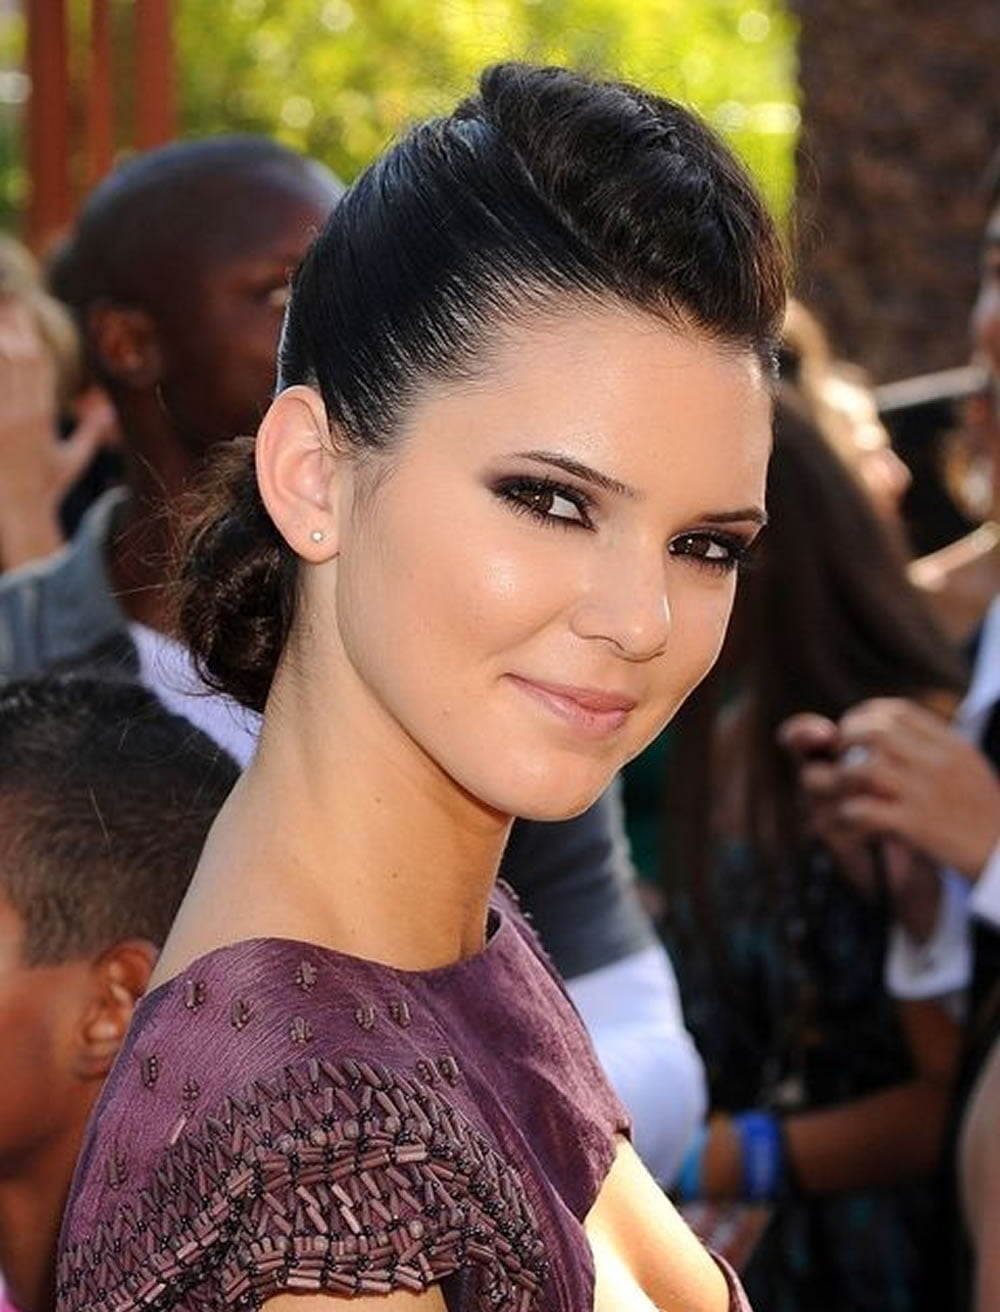 jenners women The reality star has been there, done that when it comes to dating women  which brought up some emotions regarding her former life as bruce jenner.